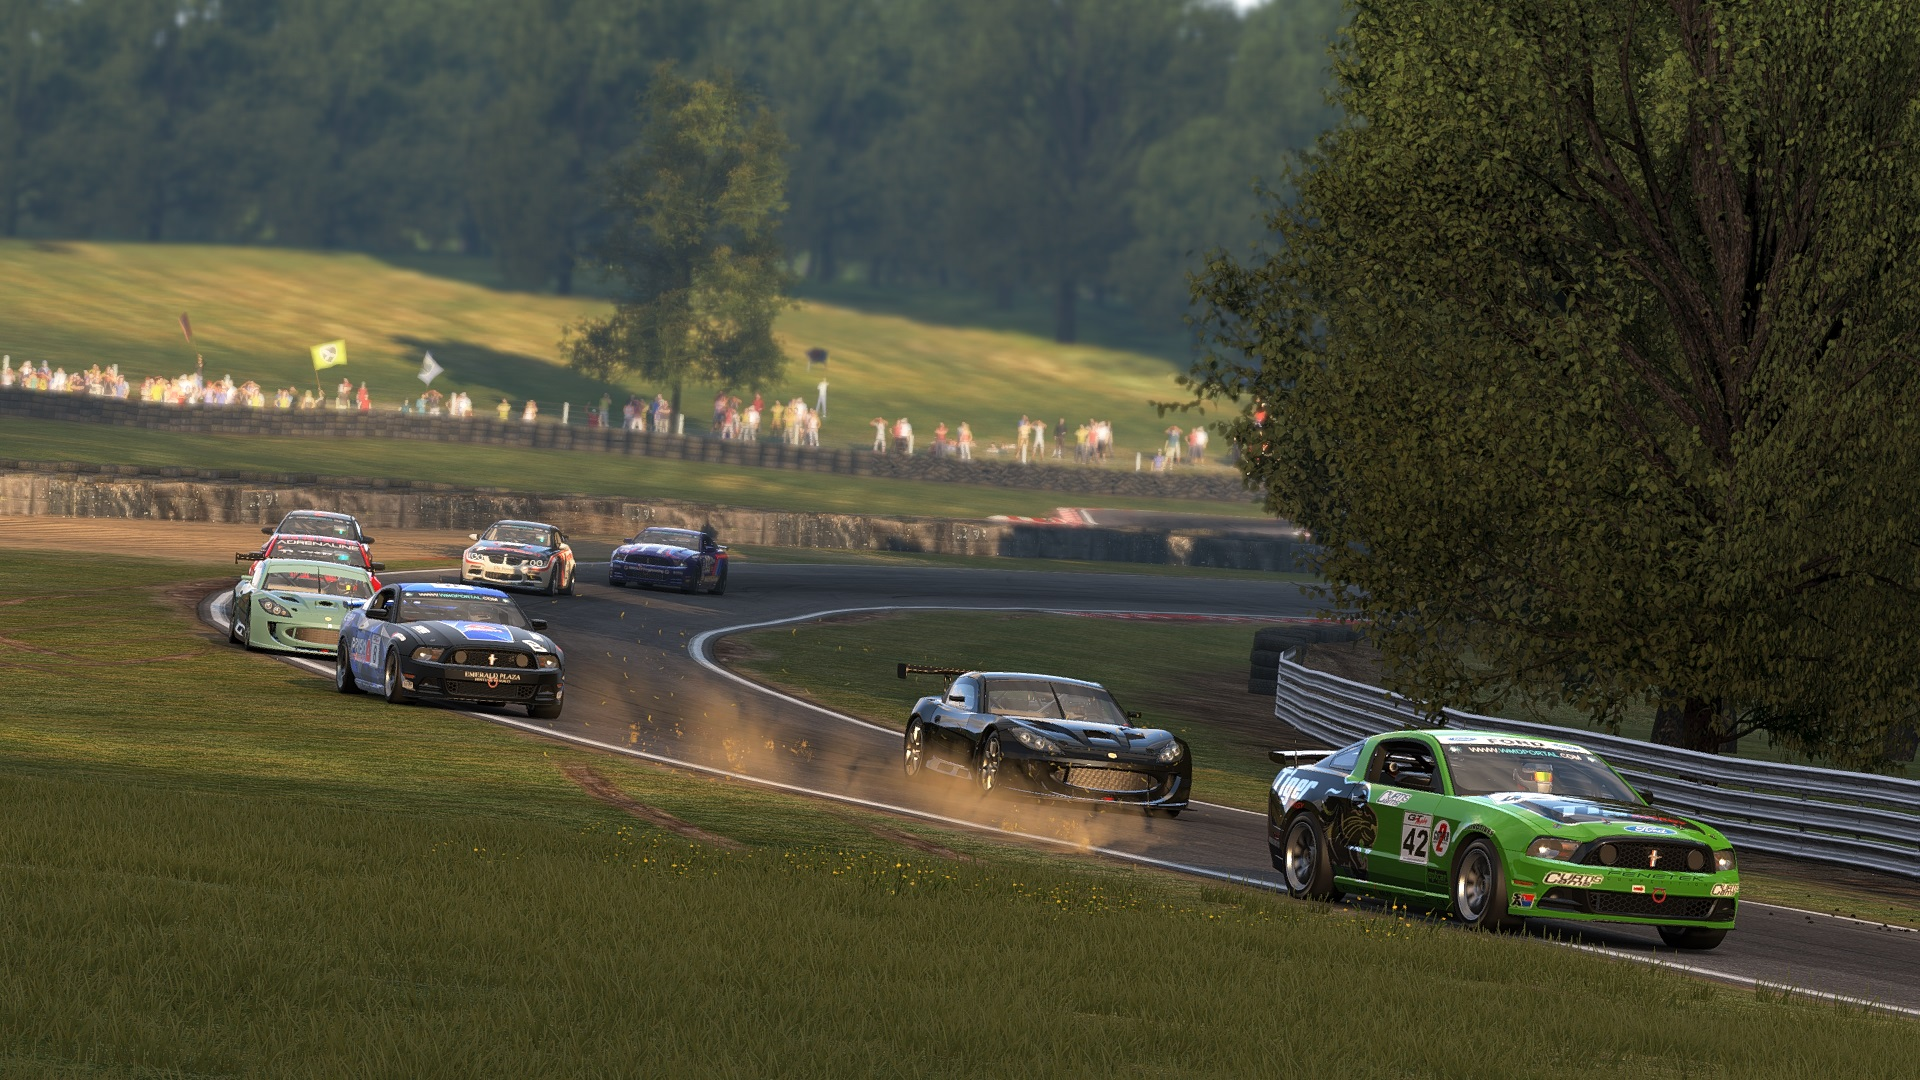 13/8 Project Cars Screens 16